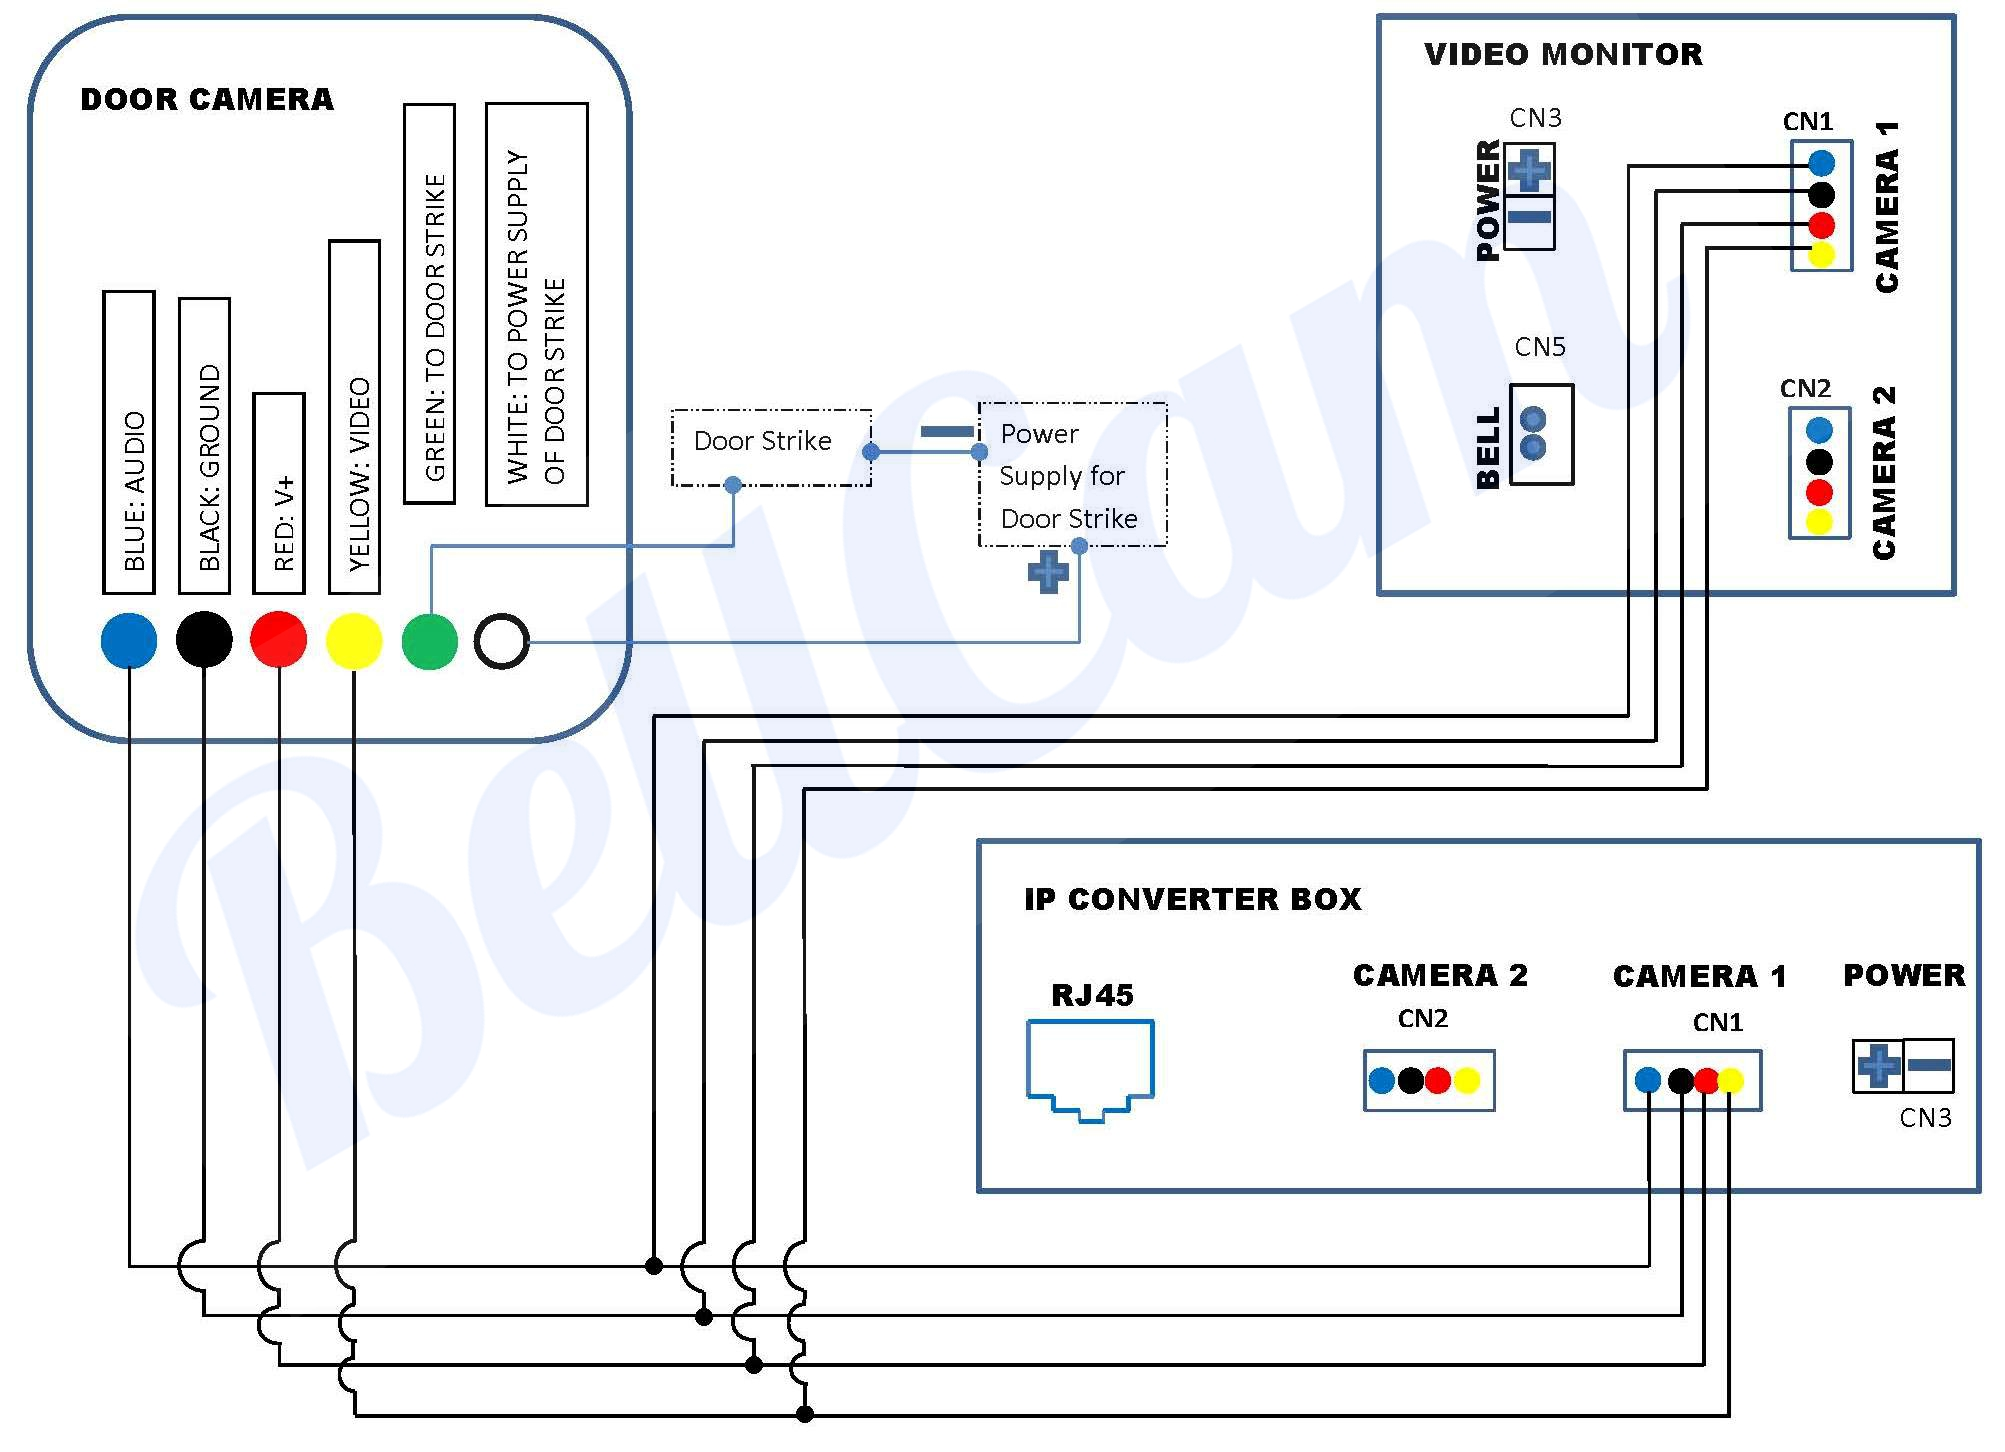 wiring diagram 4 wires door camera video monitor and ip converter video door intercom system with 7\